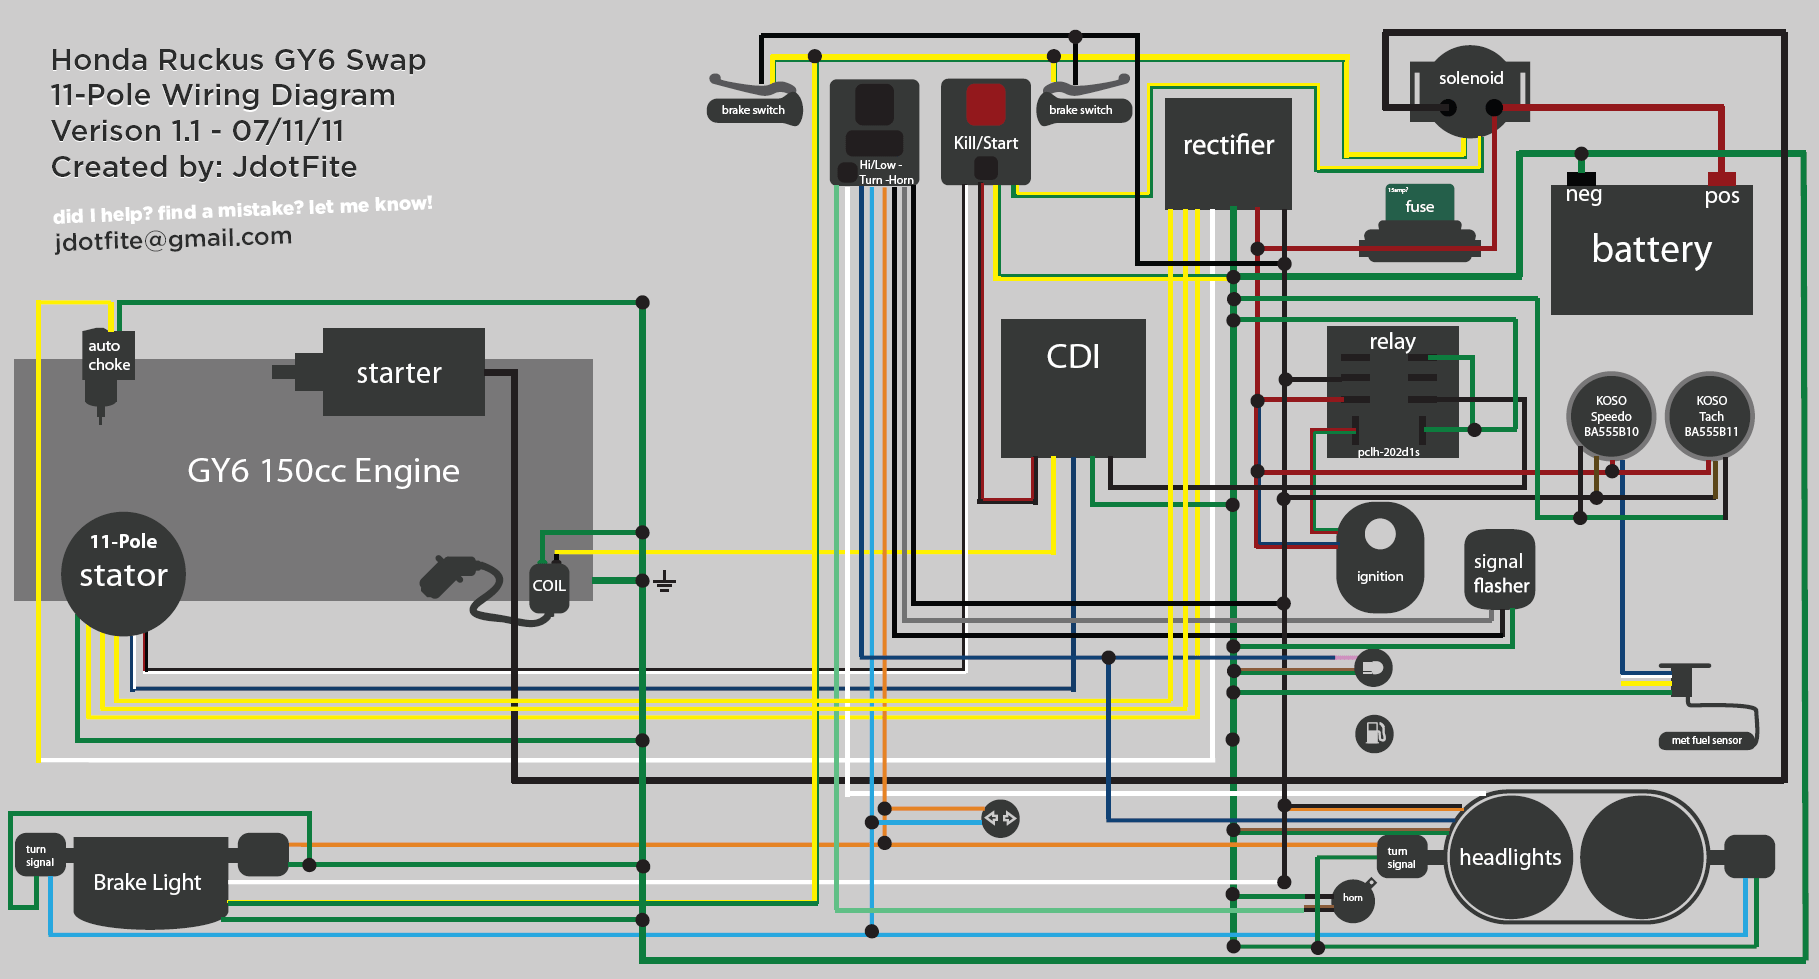 ruckus gy6 wiring diagram gy6 wiring harness diagram gy6 ignition wiring diagram \u2022 free 49cc scooter wiring diagram at virtualis.co